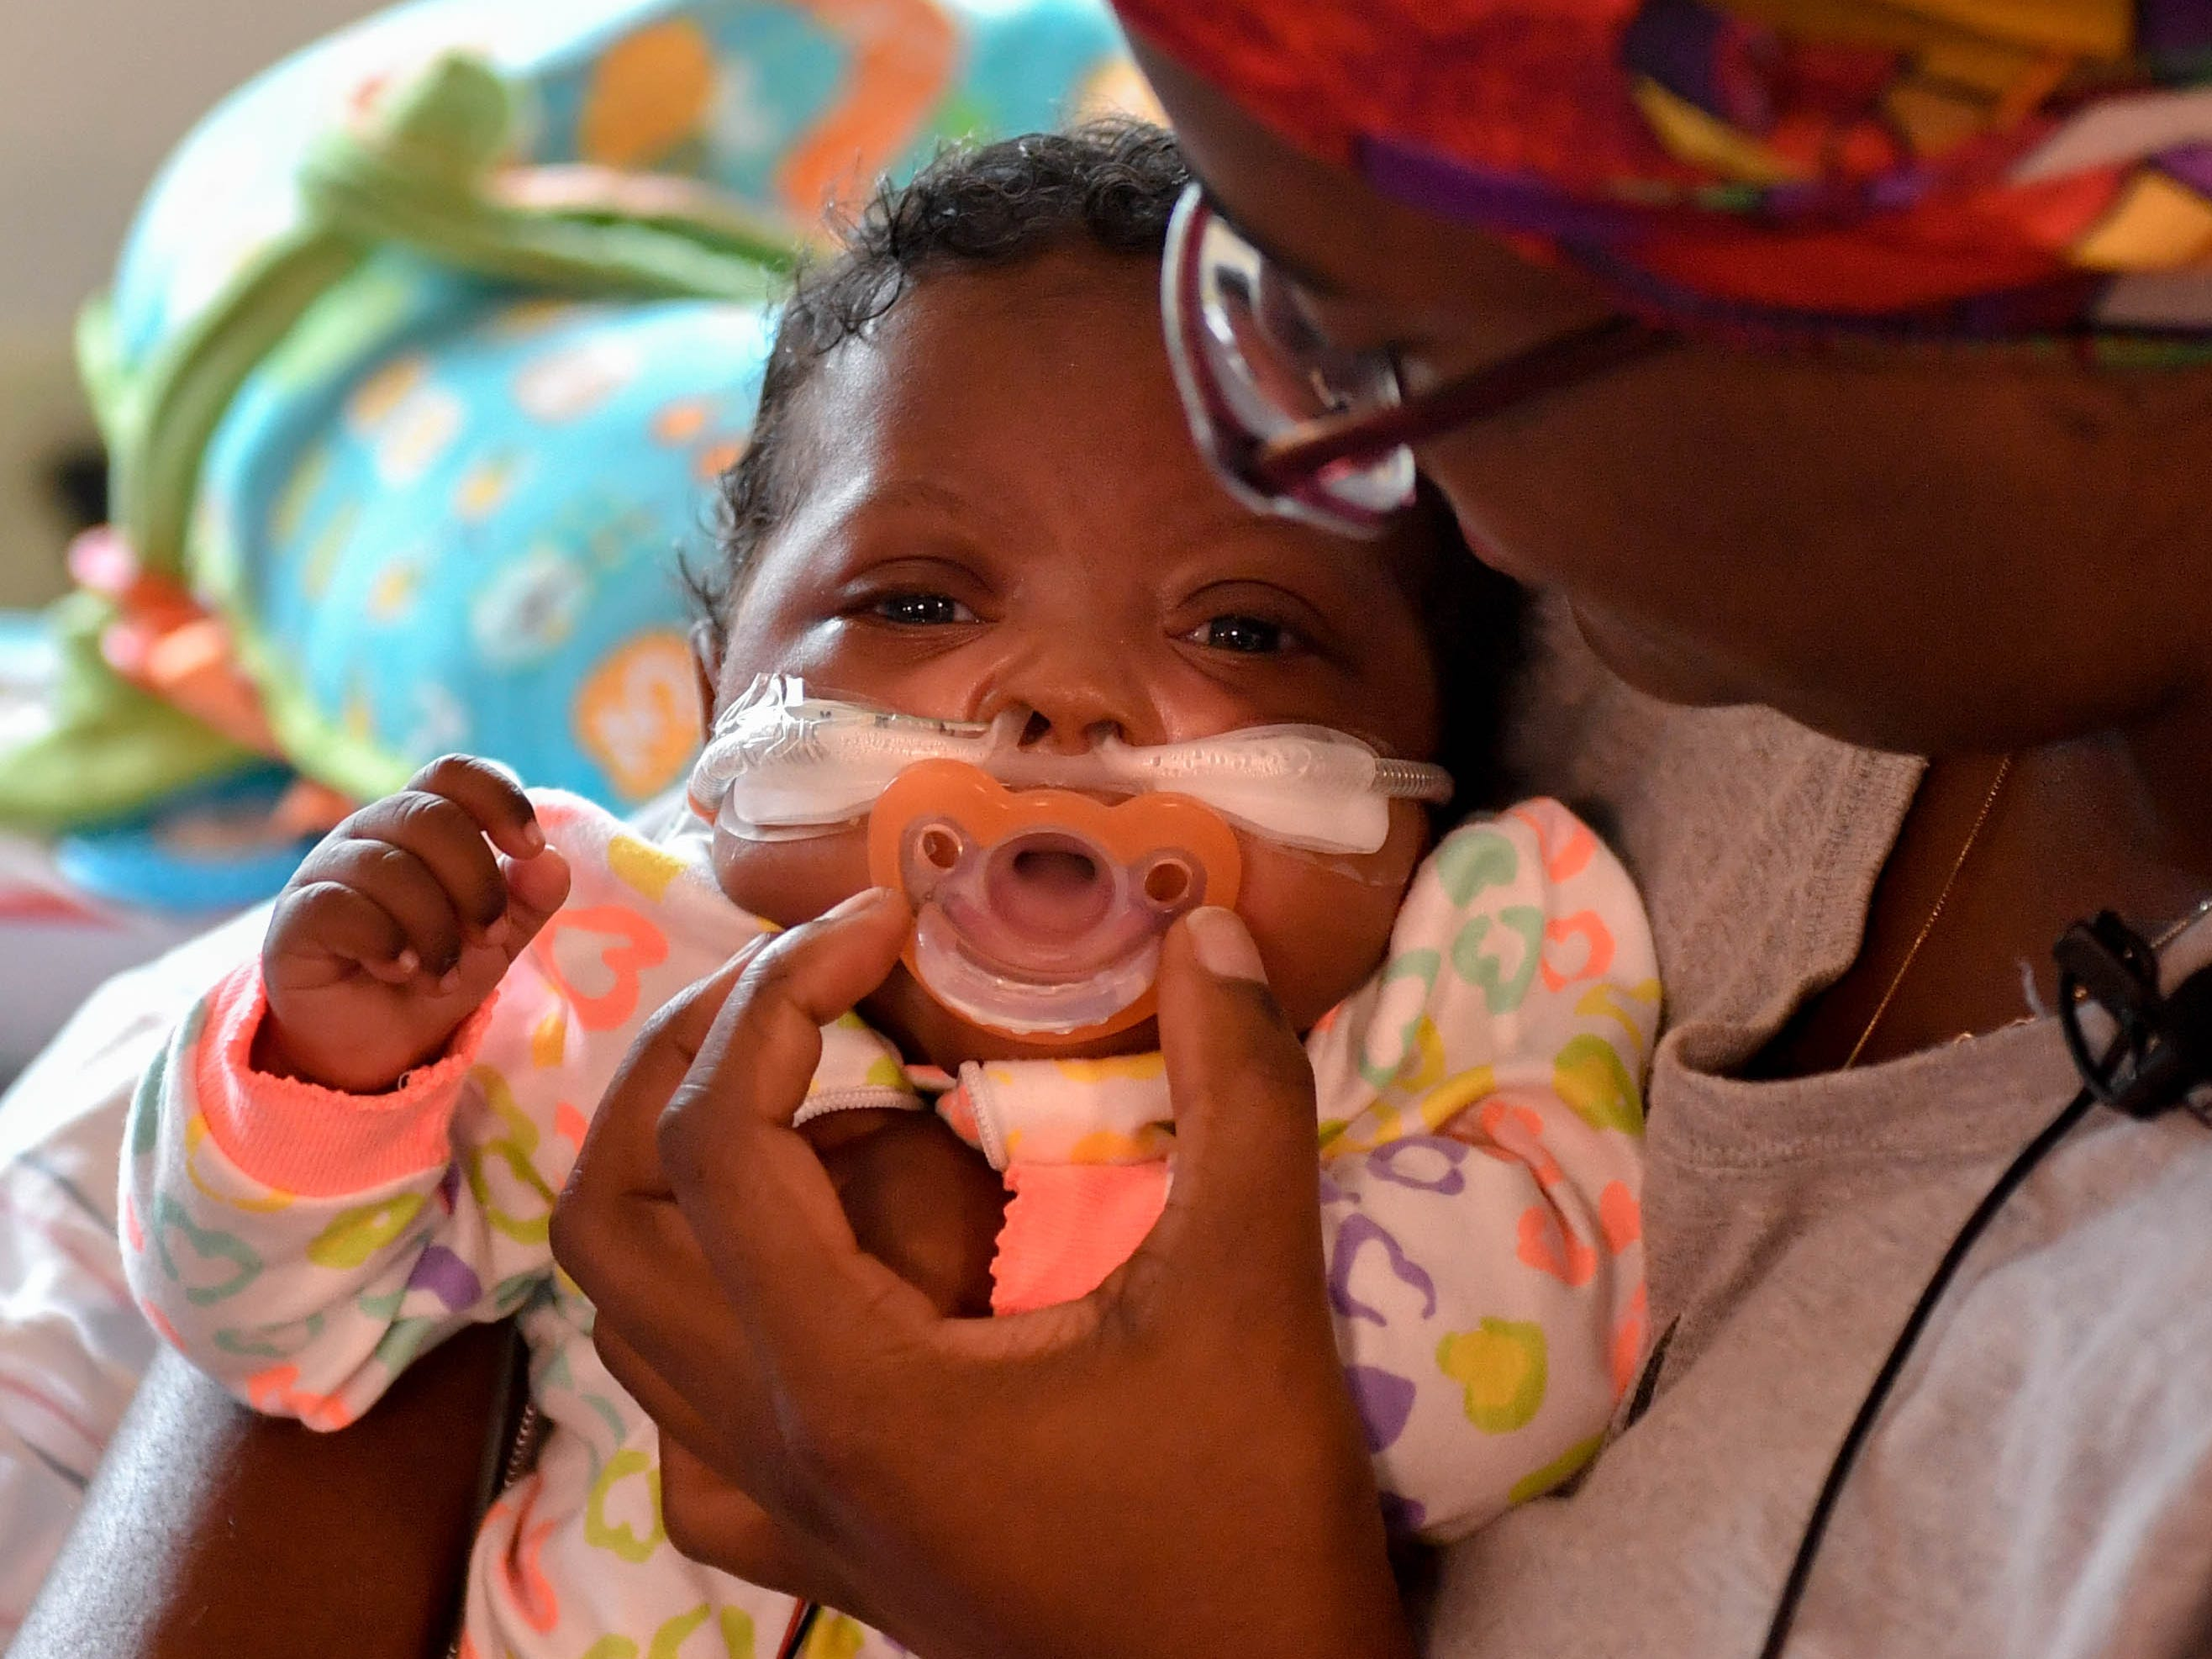 U'Nyizàh Jay'myia Hall was born 23 weeks early on May 1, 2018. She was one pound and around four ounces and now she's nine pounds and almost six ounces. Her mother, Angelina Hall, has been with her every step of the way.